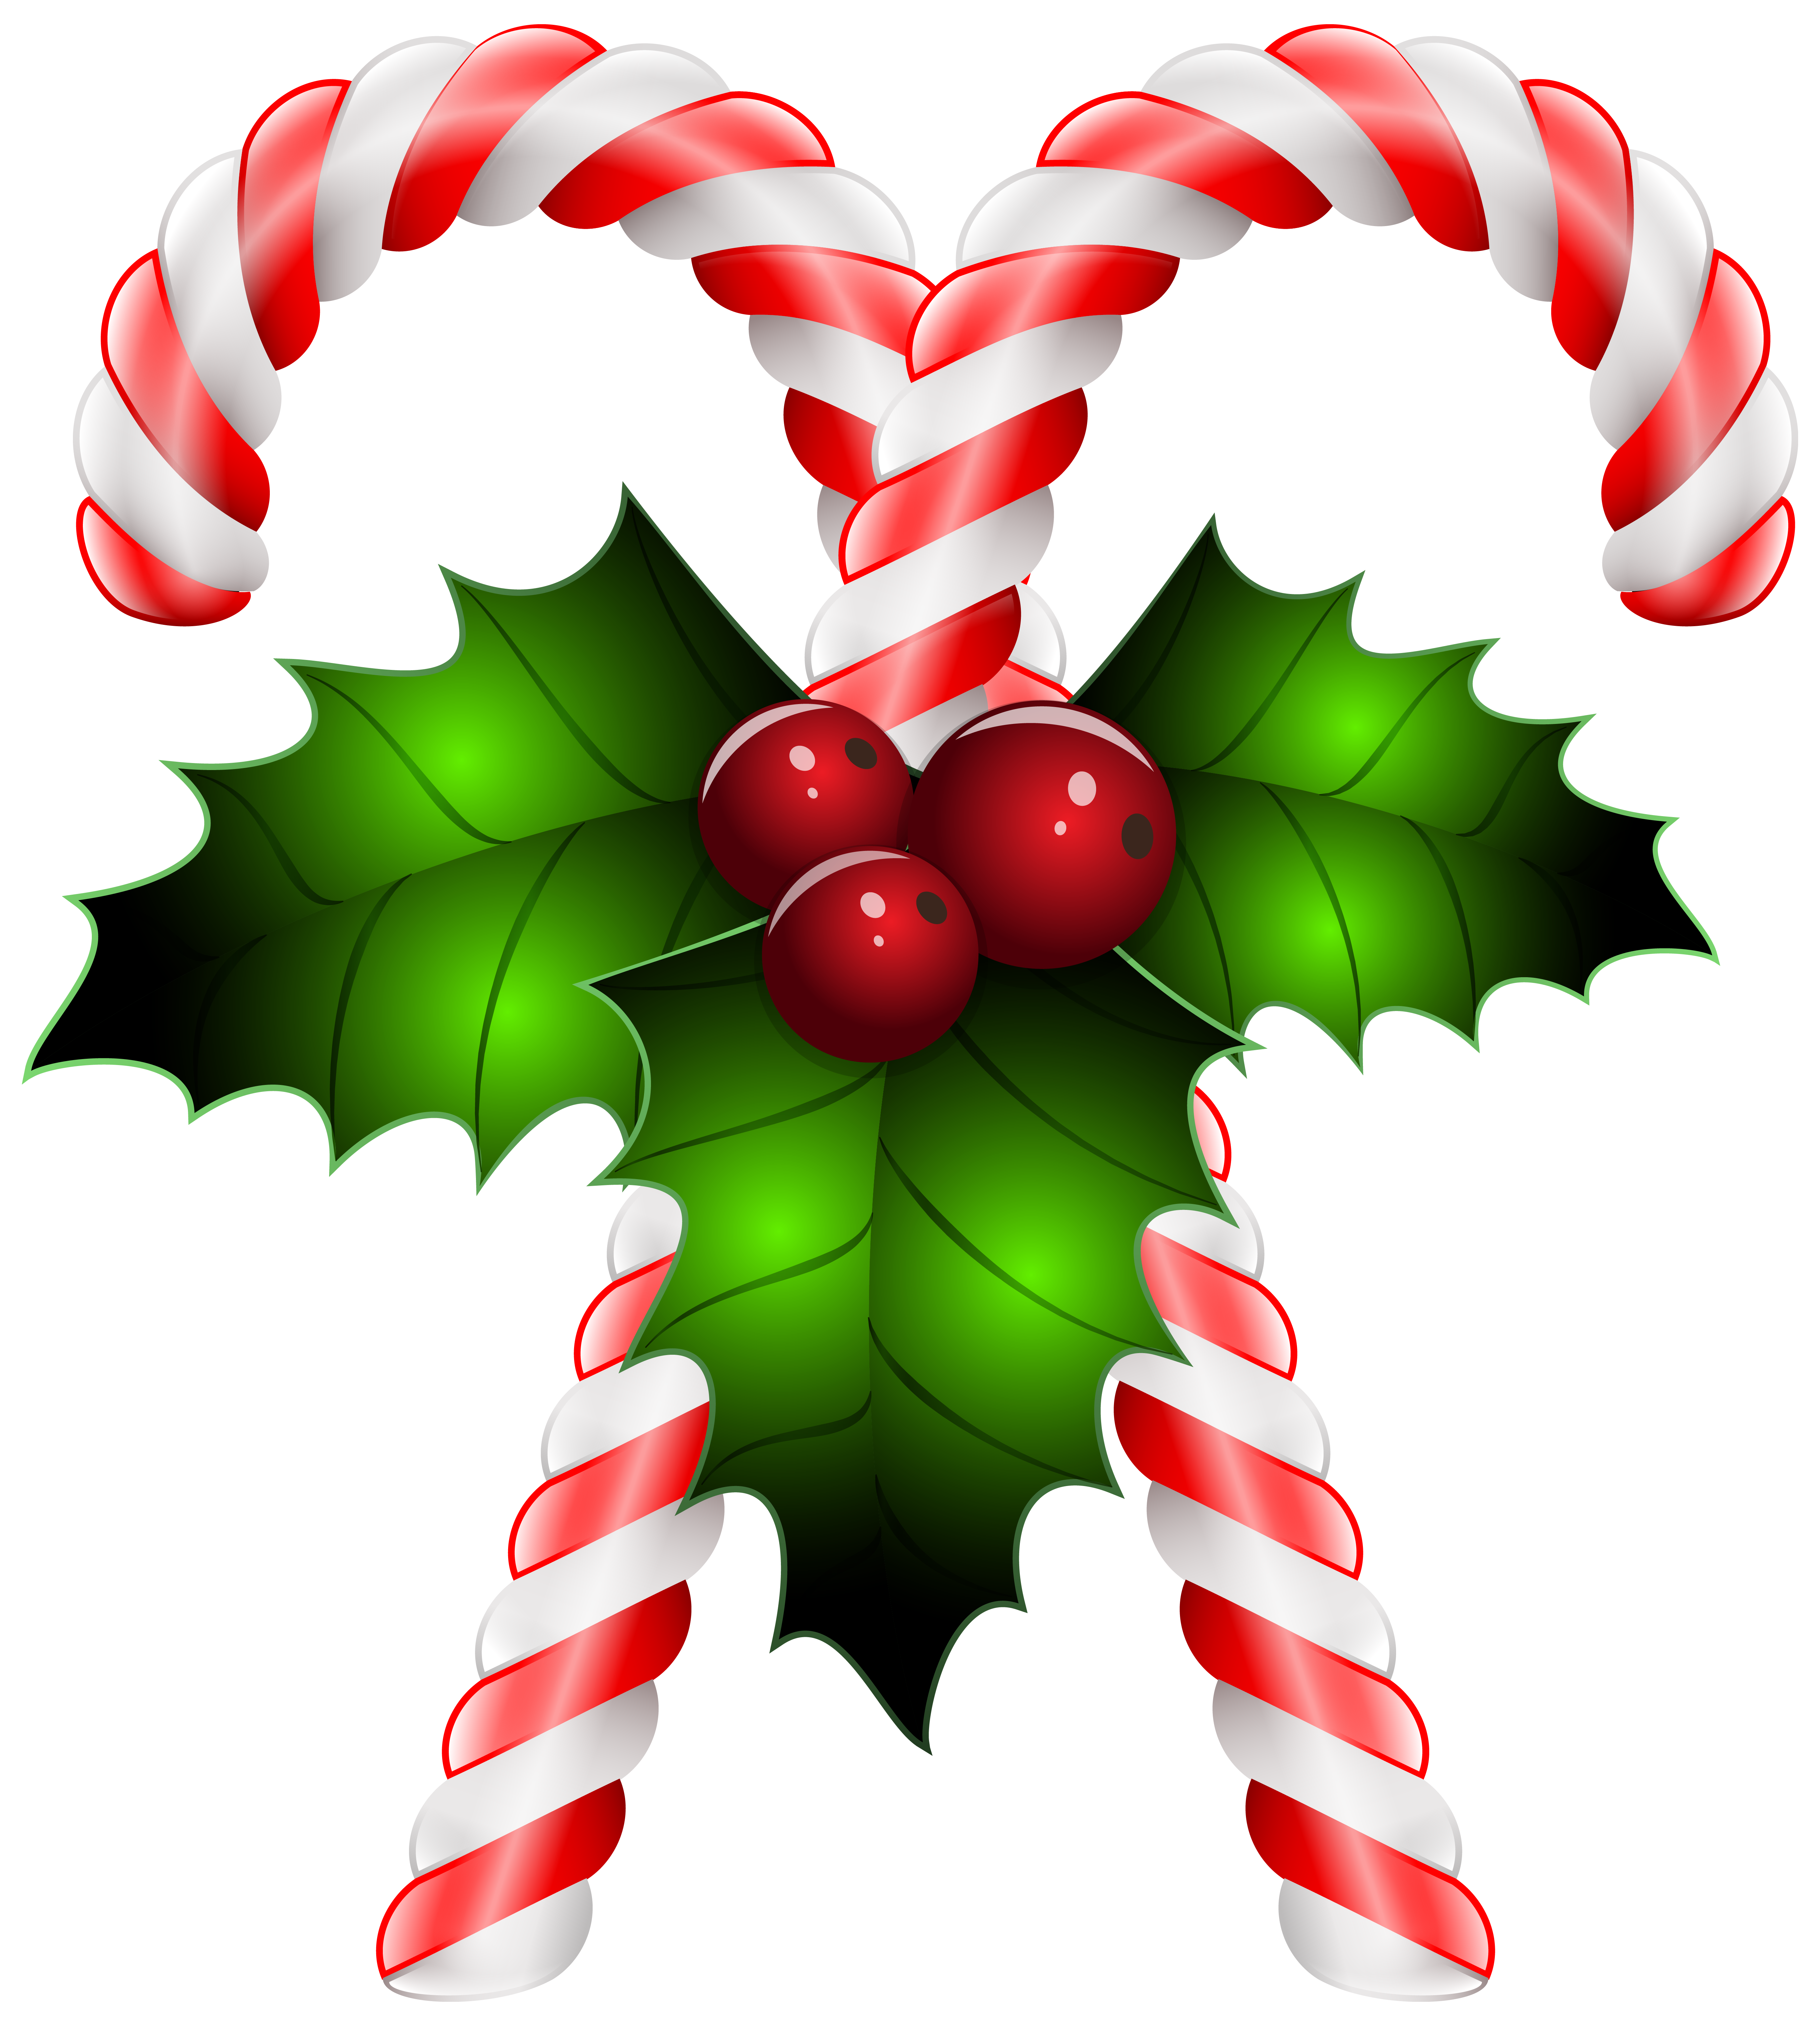 Christmas clipart with transparent background jpg free library Candy Canes with Holly Transparent PNG Clip Art Image | Gallery ... jpg free library